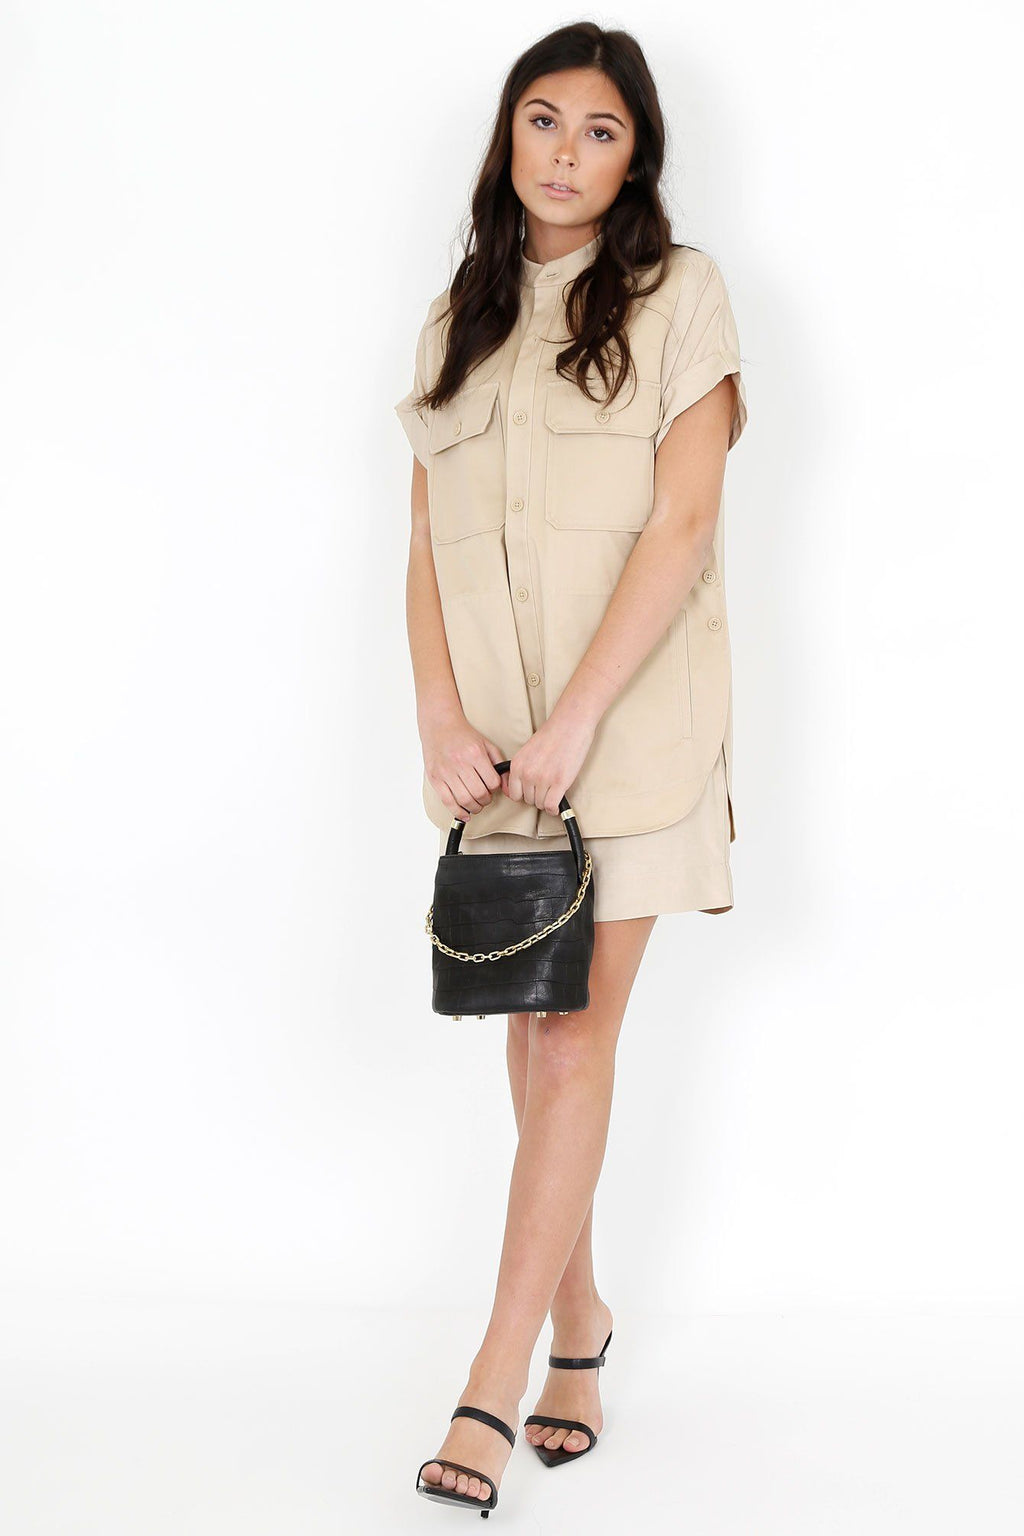 EQUIPMENT | Acaena Dress - Safari Nude